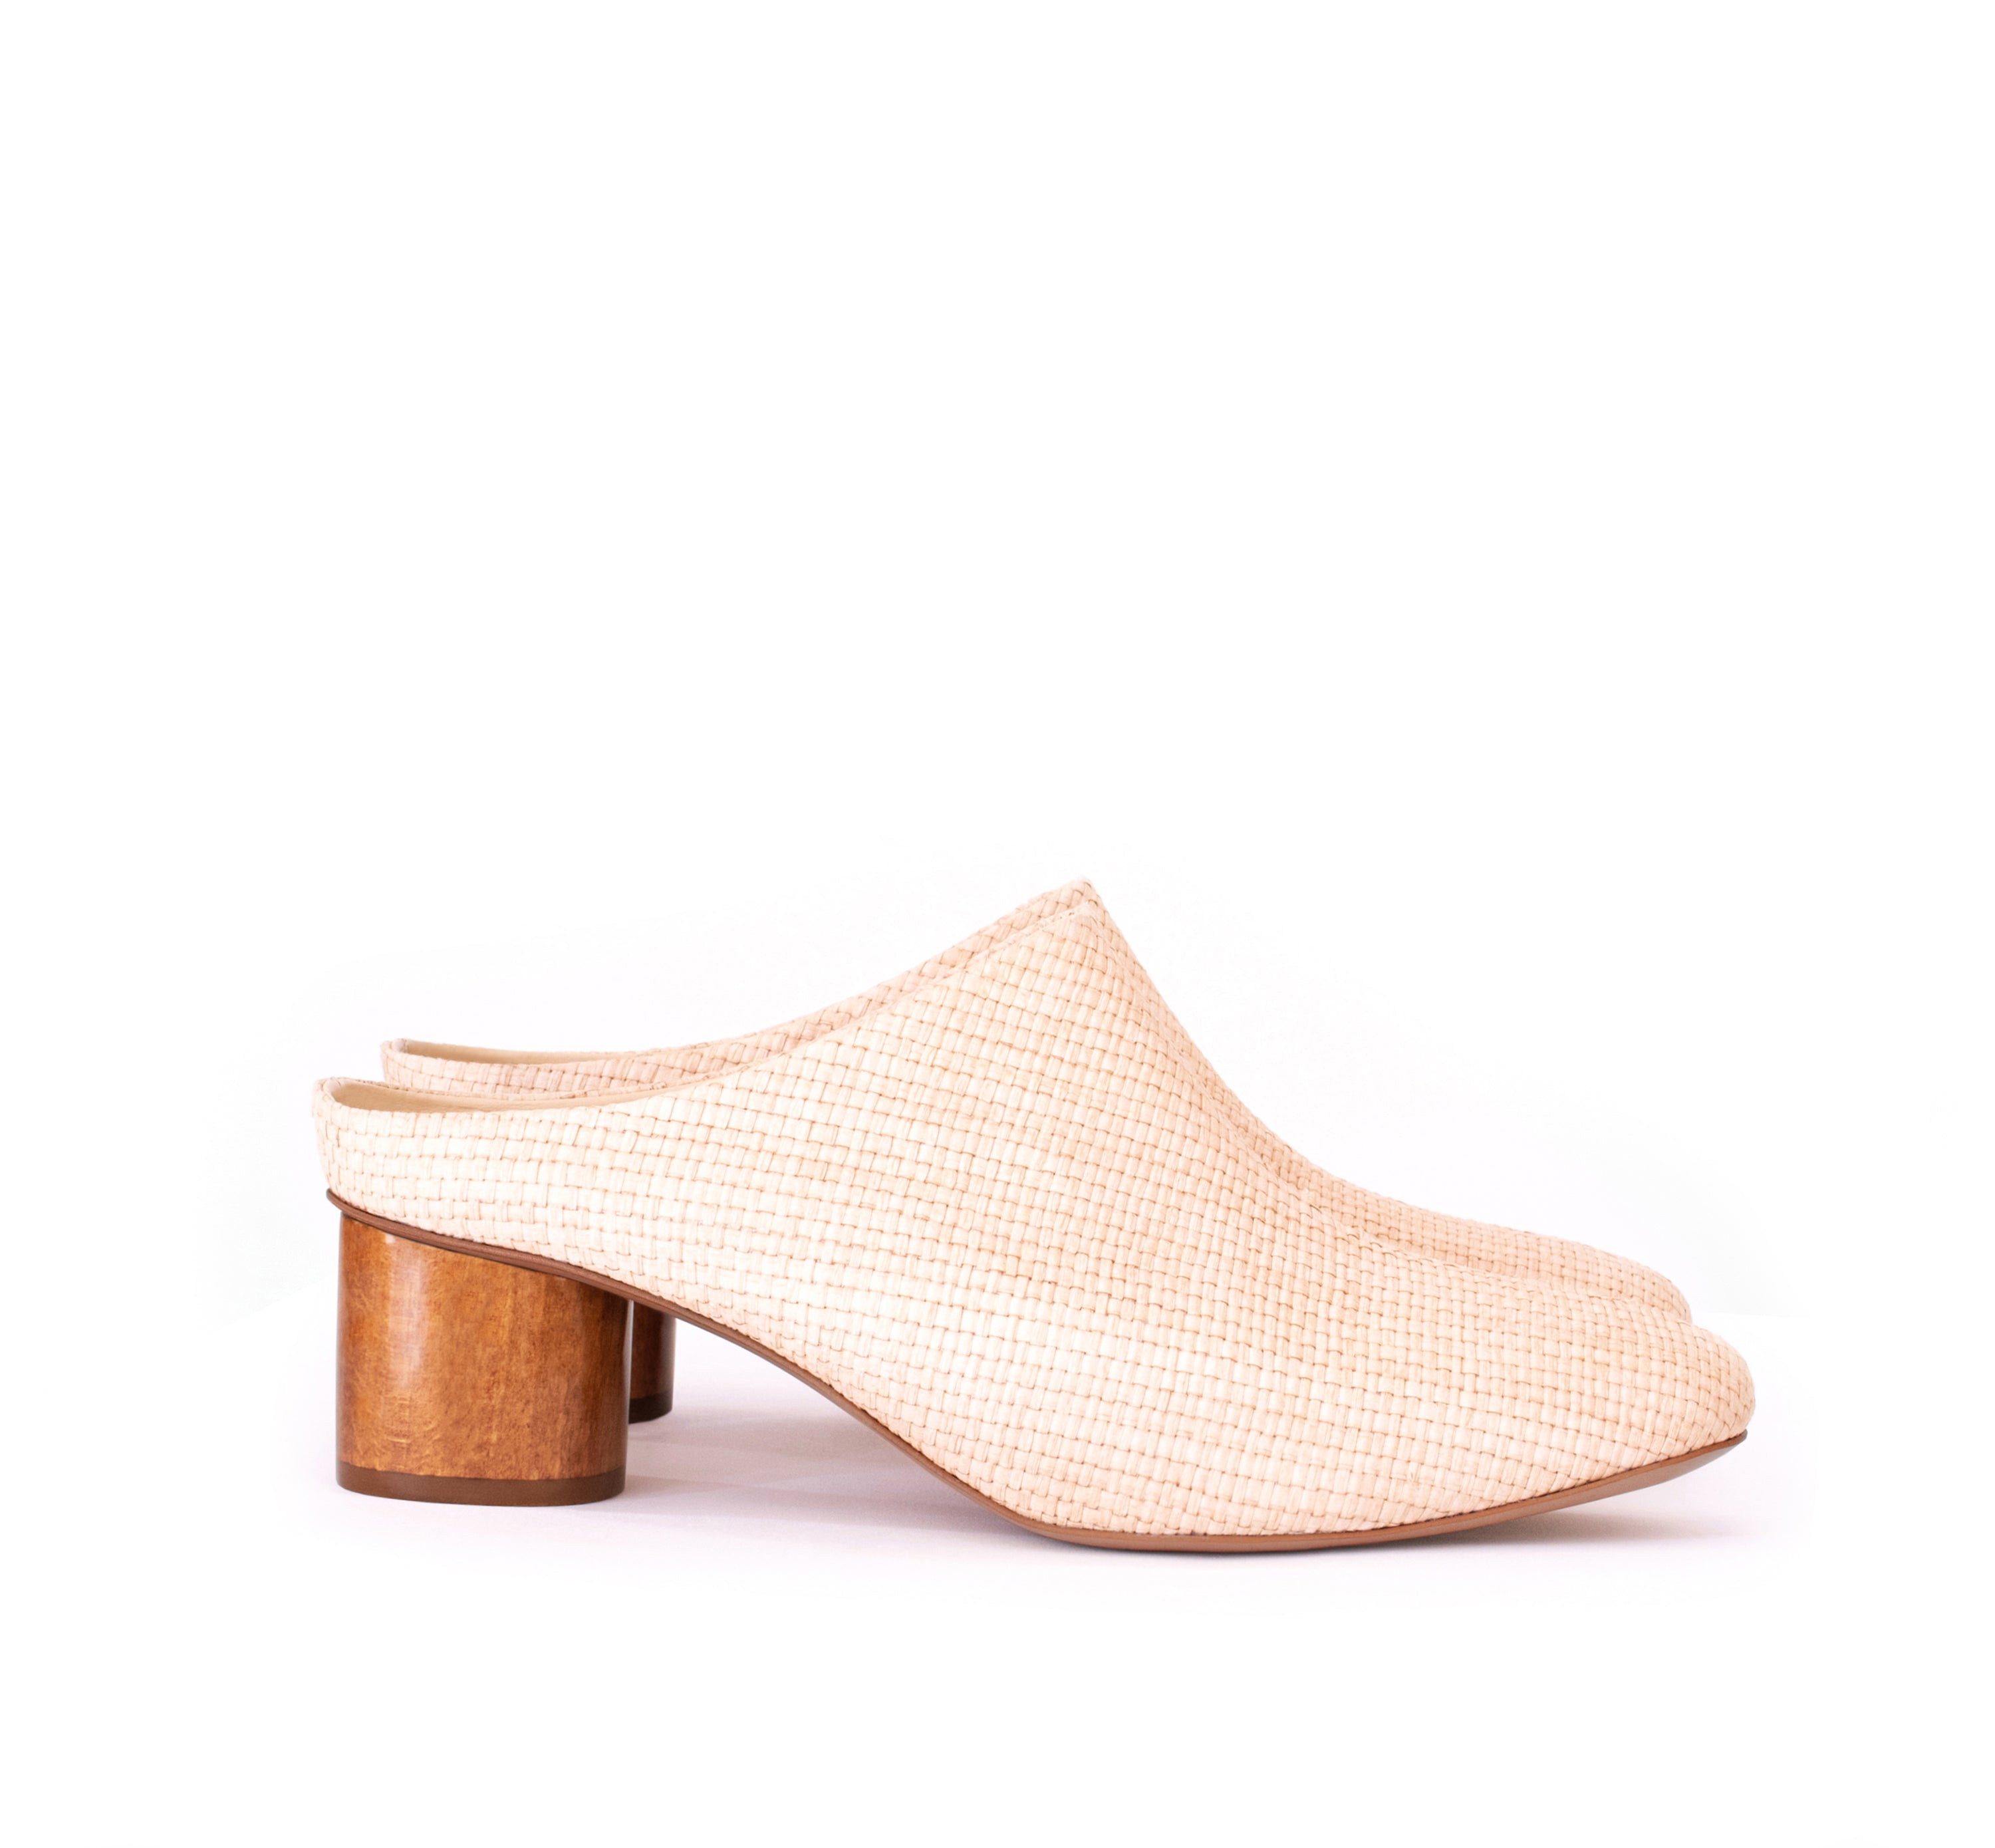 Low Mules in natural raffia and breathable lining with dark wood heel. Luxury vegan heels. Sydney Brown Spring Summer 2019. Sustainable, luxury, eco-friendly SS19 fashion